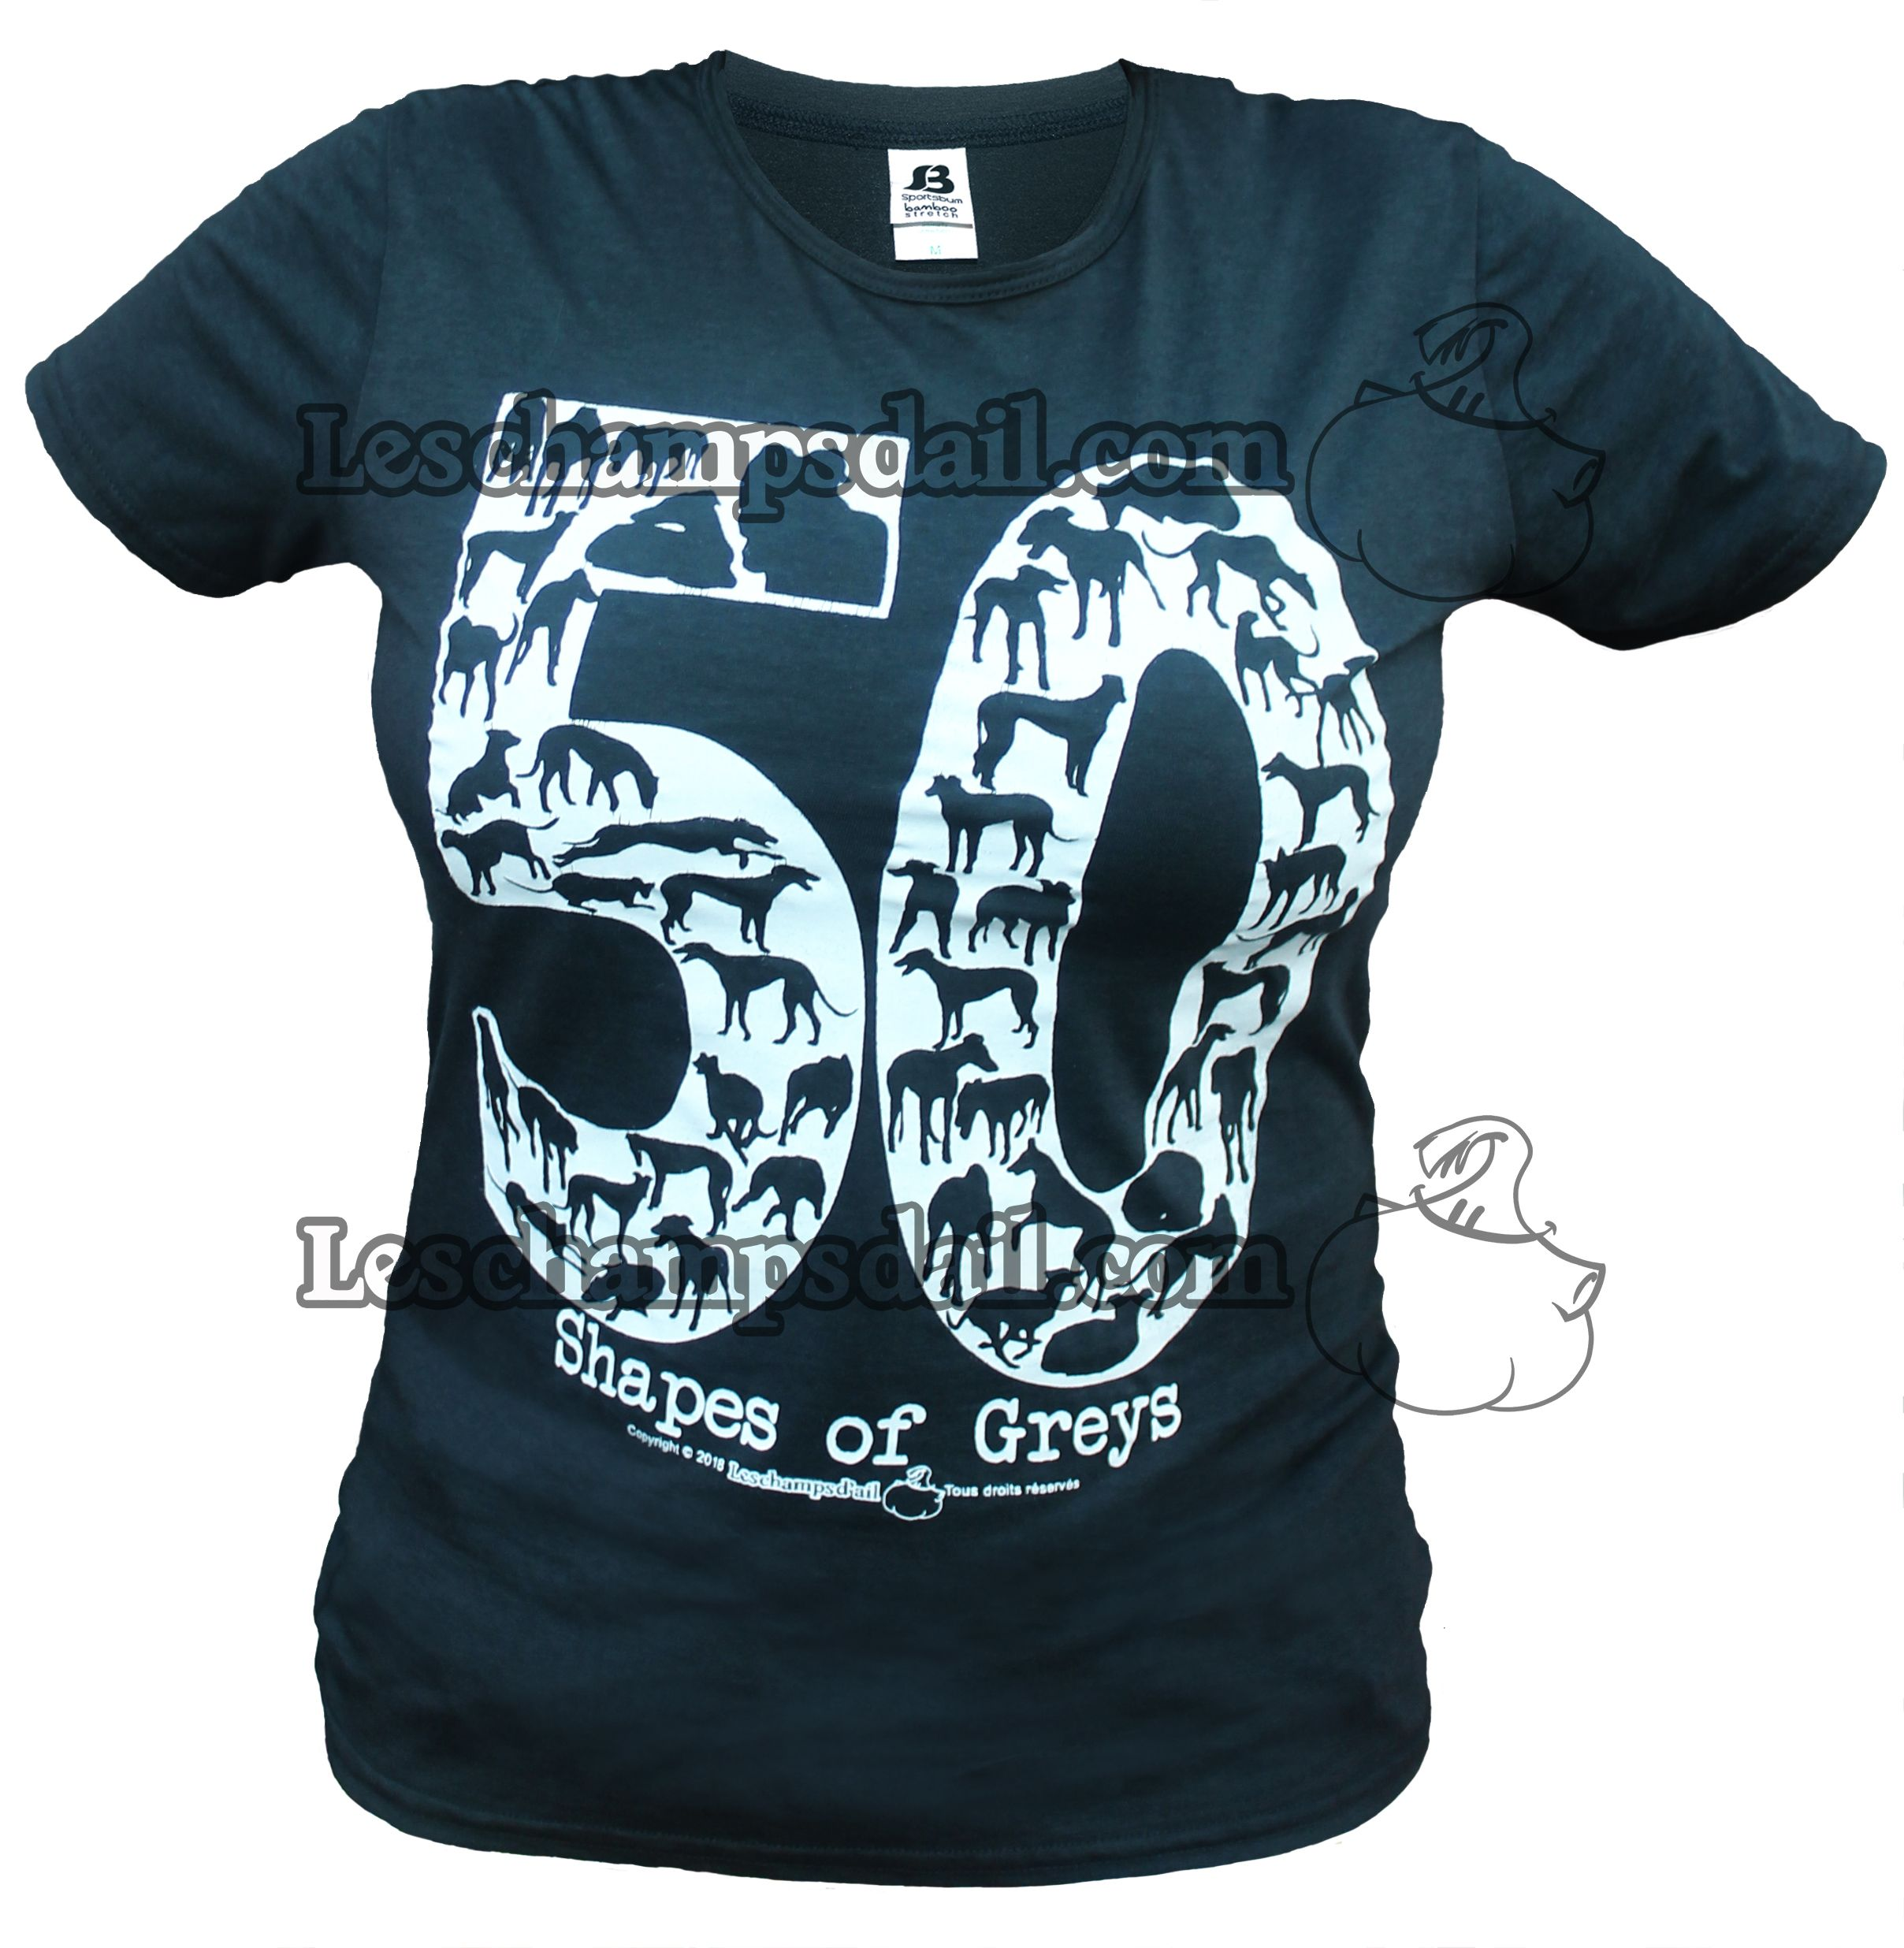 Brand new  design  tshirt now on sale in our  boutique ! Available ... a200d54dadb5d